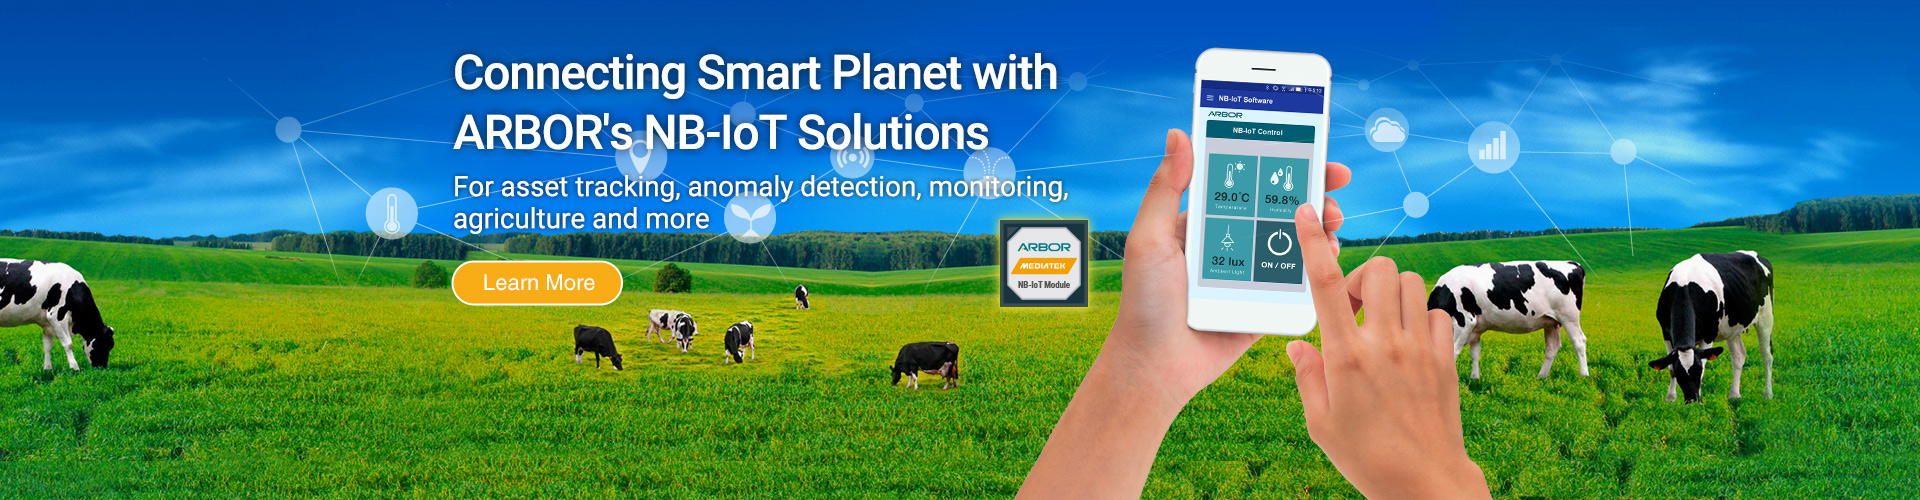 ARBOR's IoT Solutions with NB-IoT